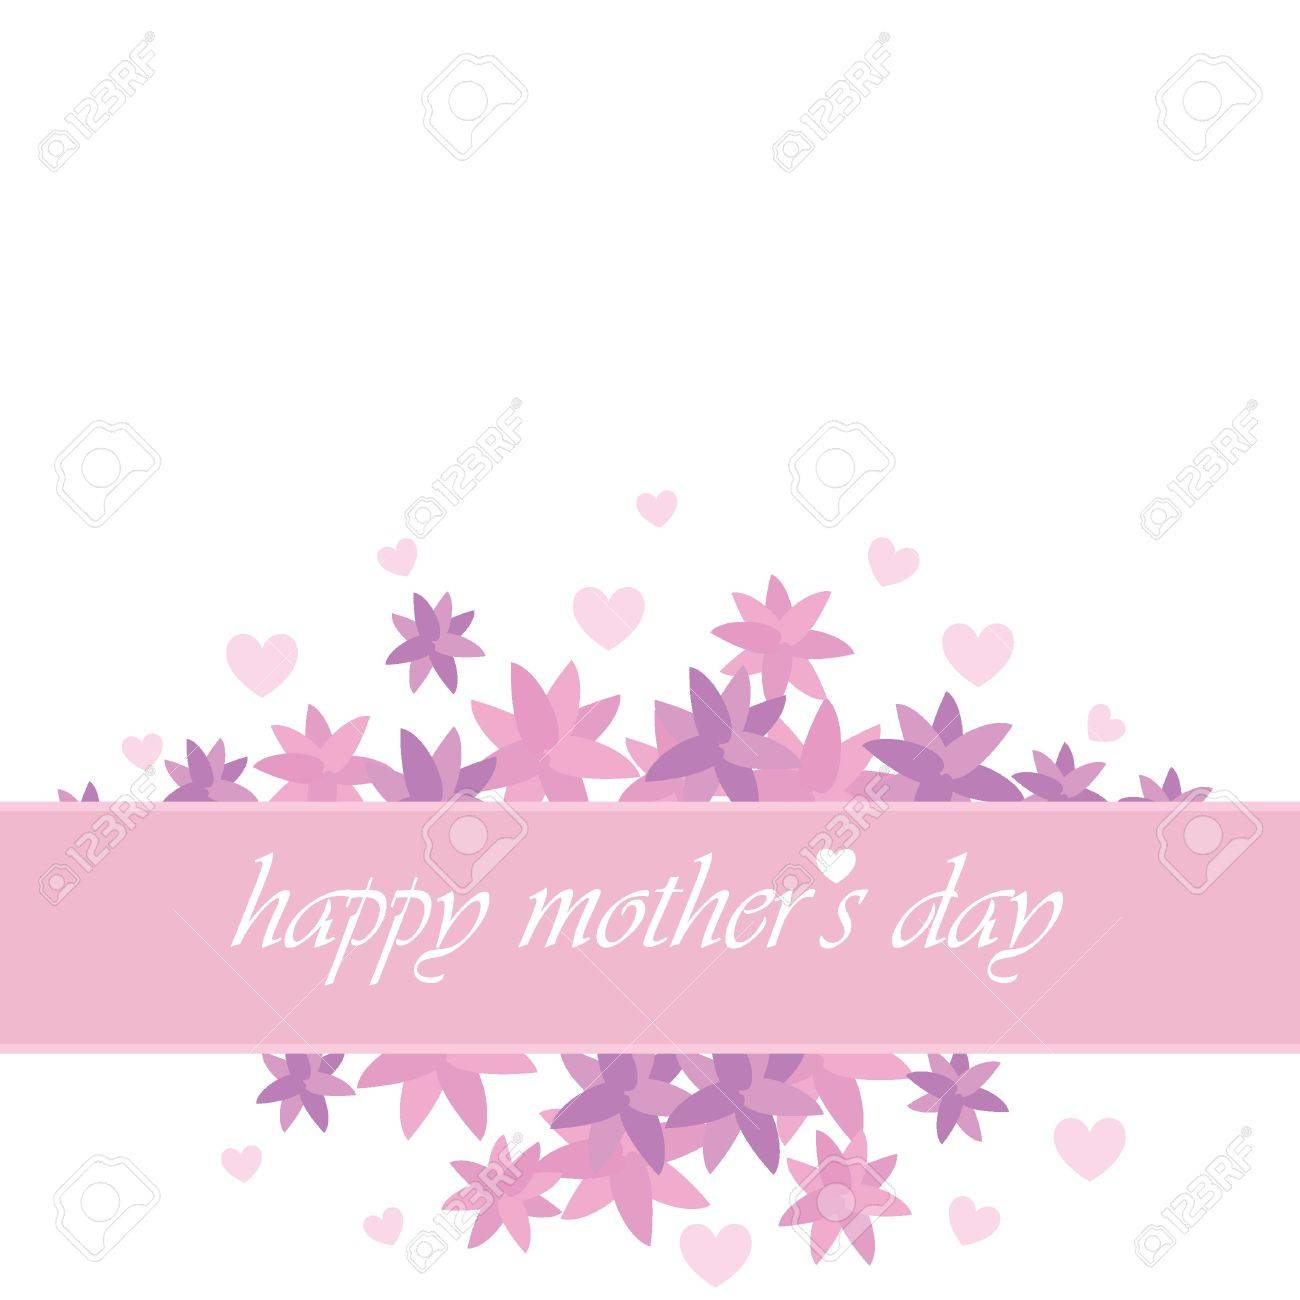 Mothers Day Card For Invitation Background Banners And Others – Mothers Day Invitation Cards